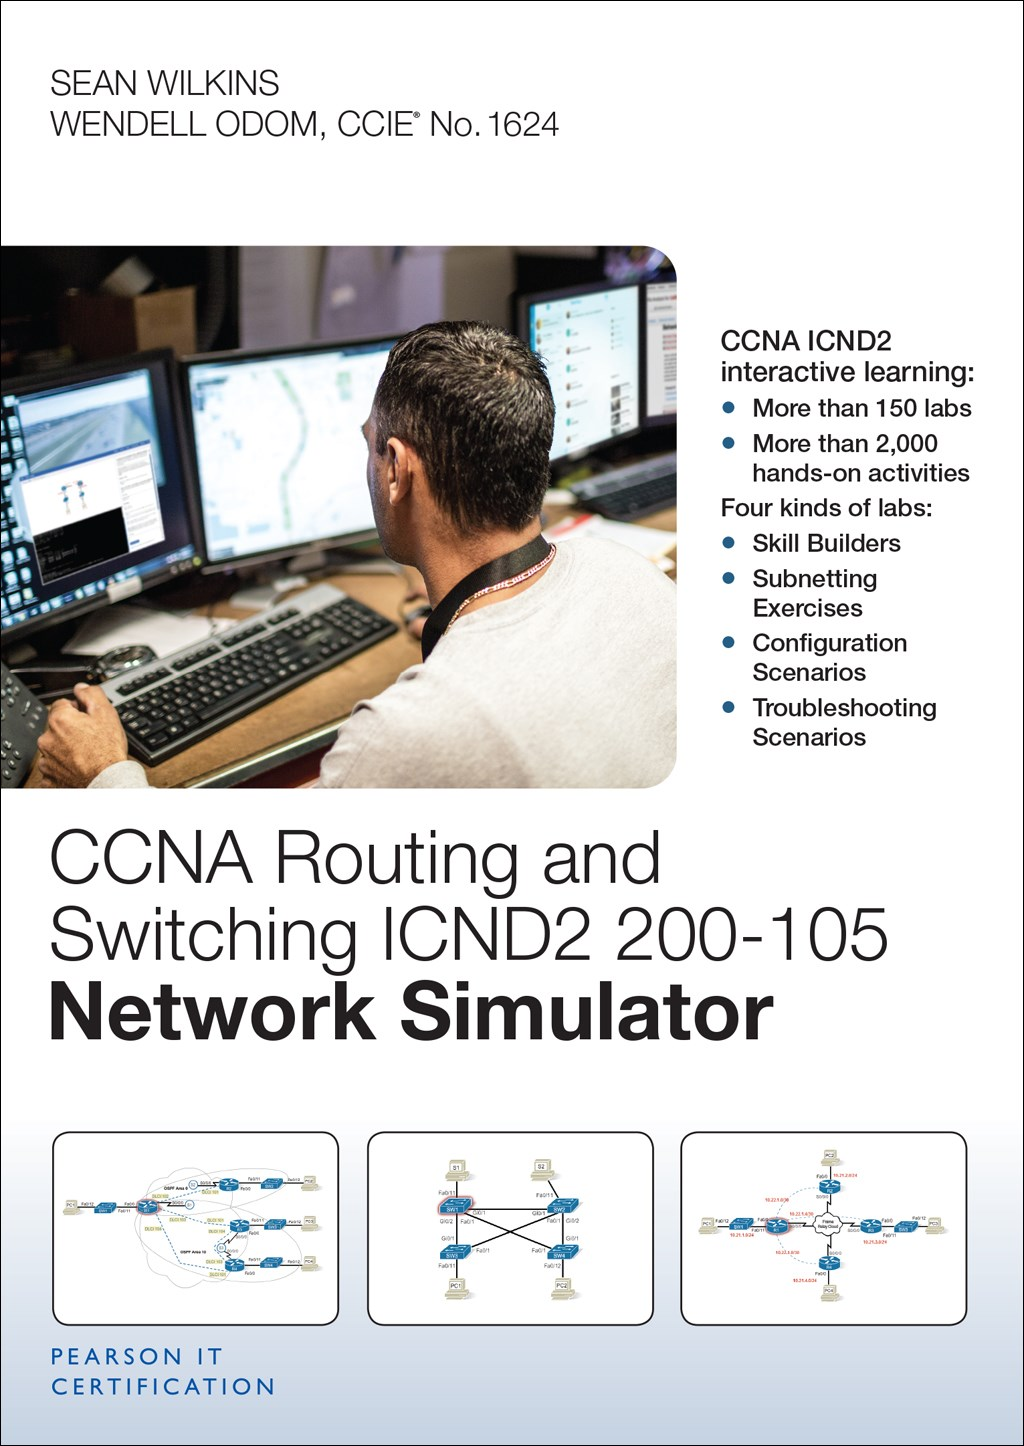 CCNA Routing and Switching ICND2 200-105 Network Simulator, Download Version